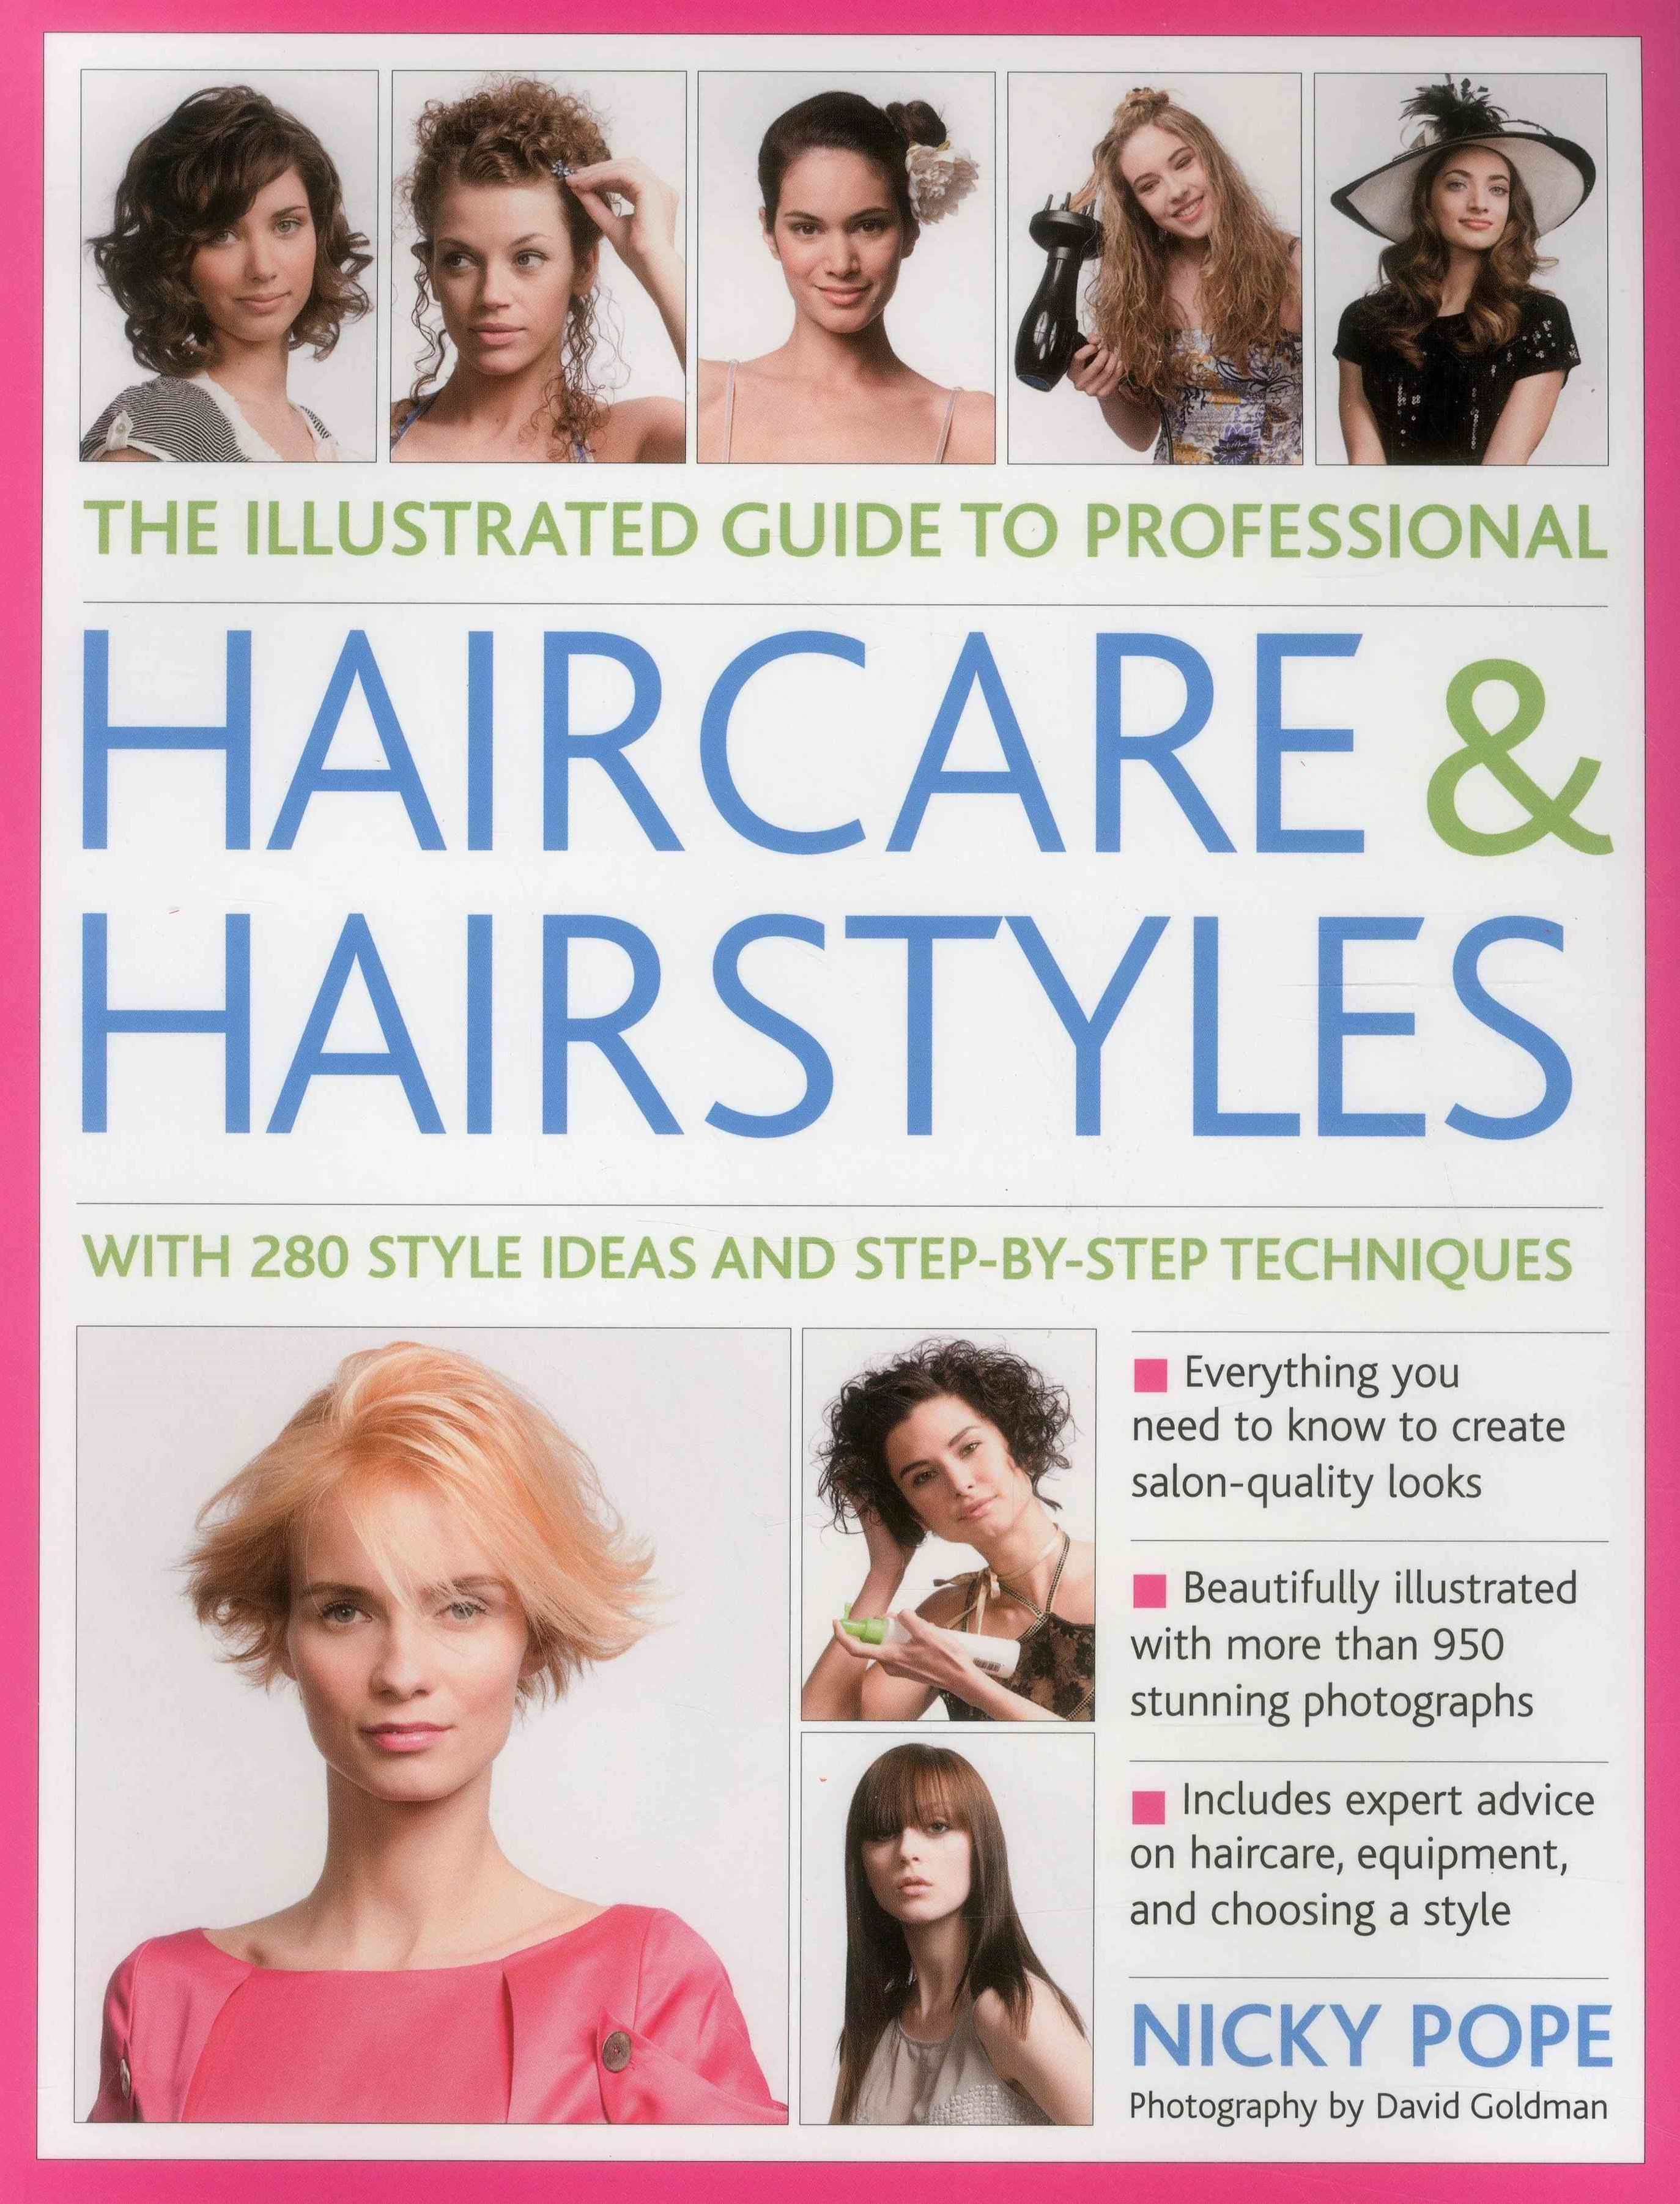 The Illustrated Guide to Professional Haircare and Hairstyles